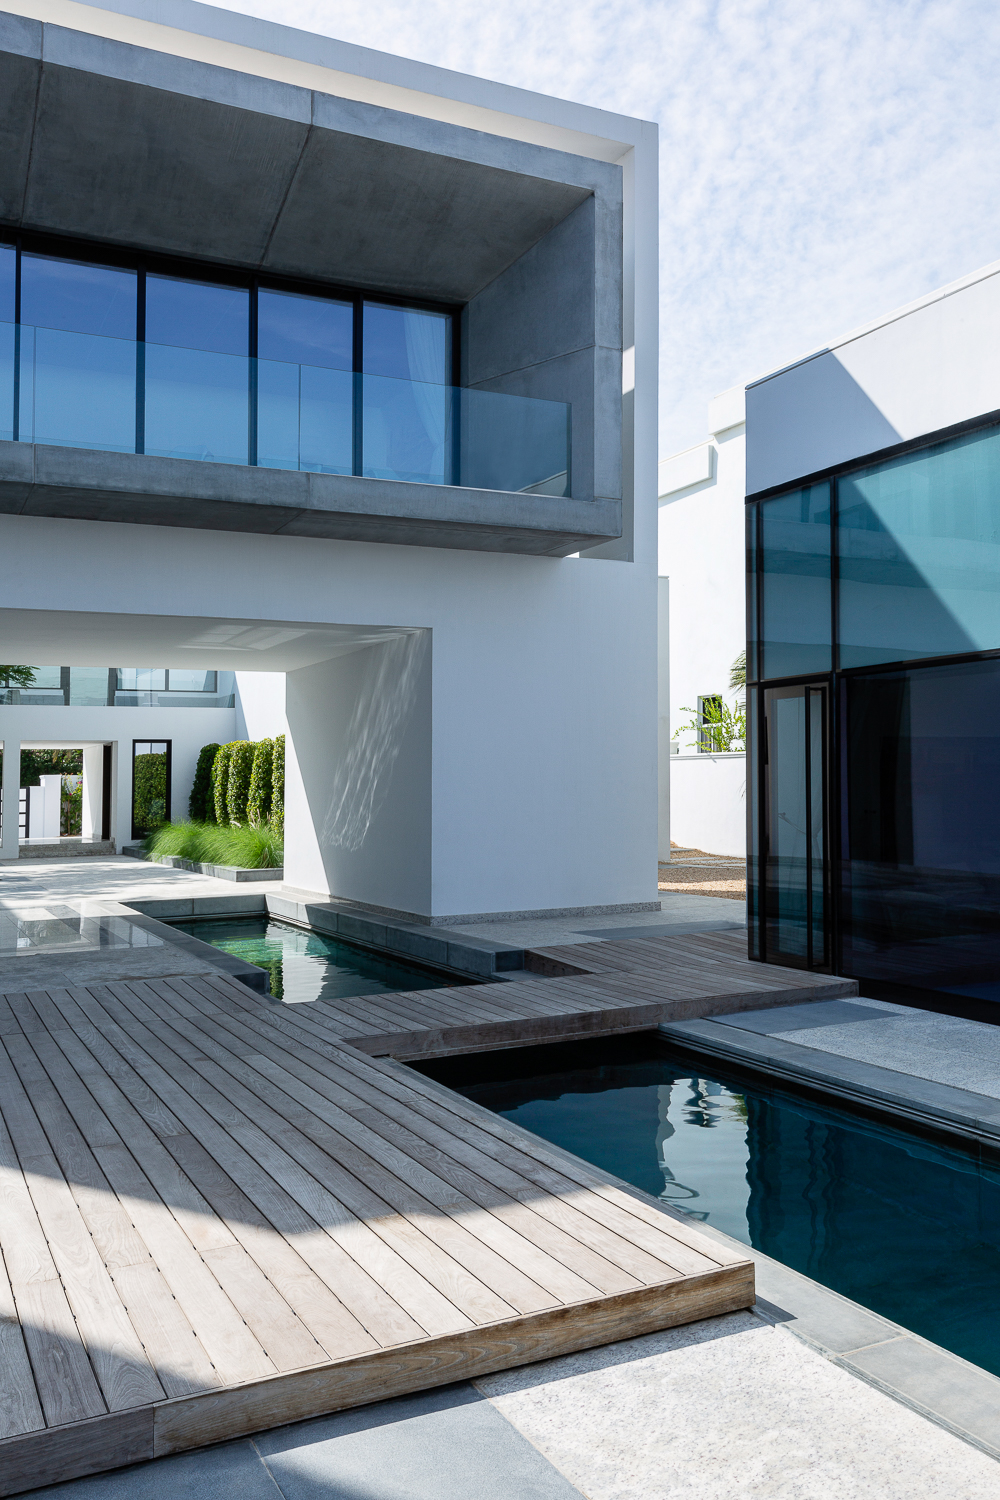 Best residential architecture photographers San Francisco Ella Bessette, courtyard with lap pool and dramatic modern cube design